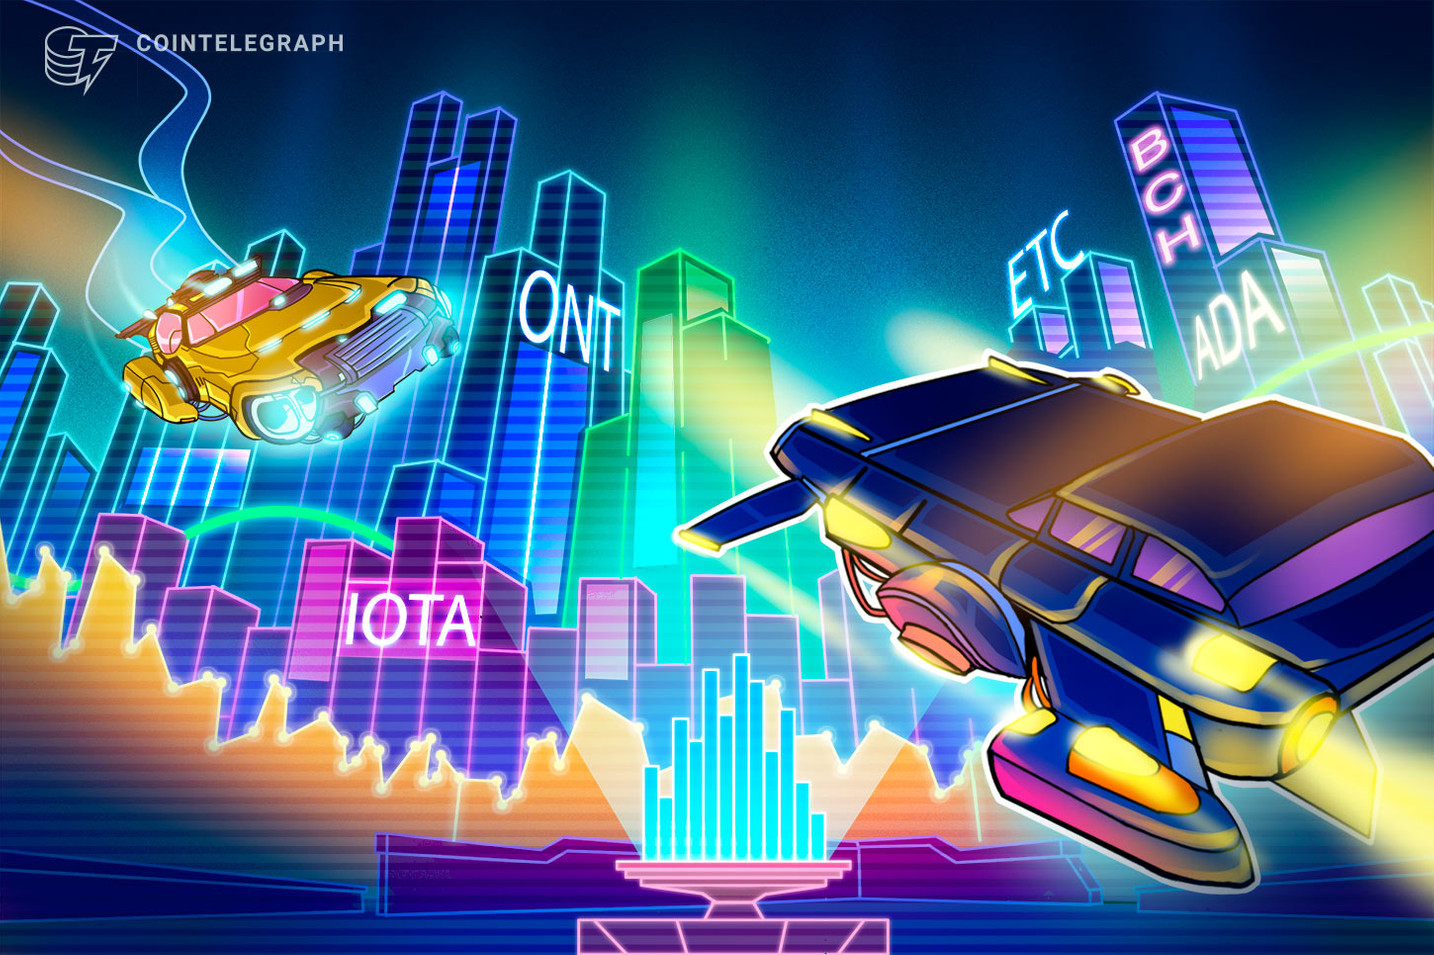 Top 5 Crypto Performers Overview: ONT, ADA, ETC, BCH, IOTA